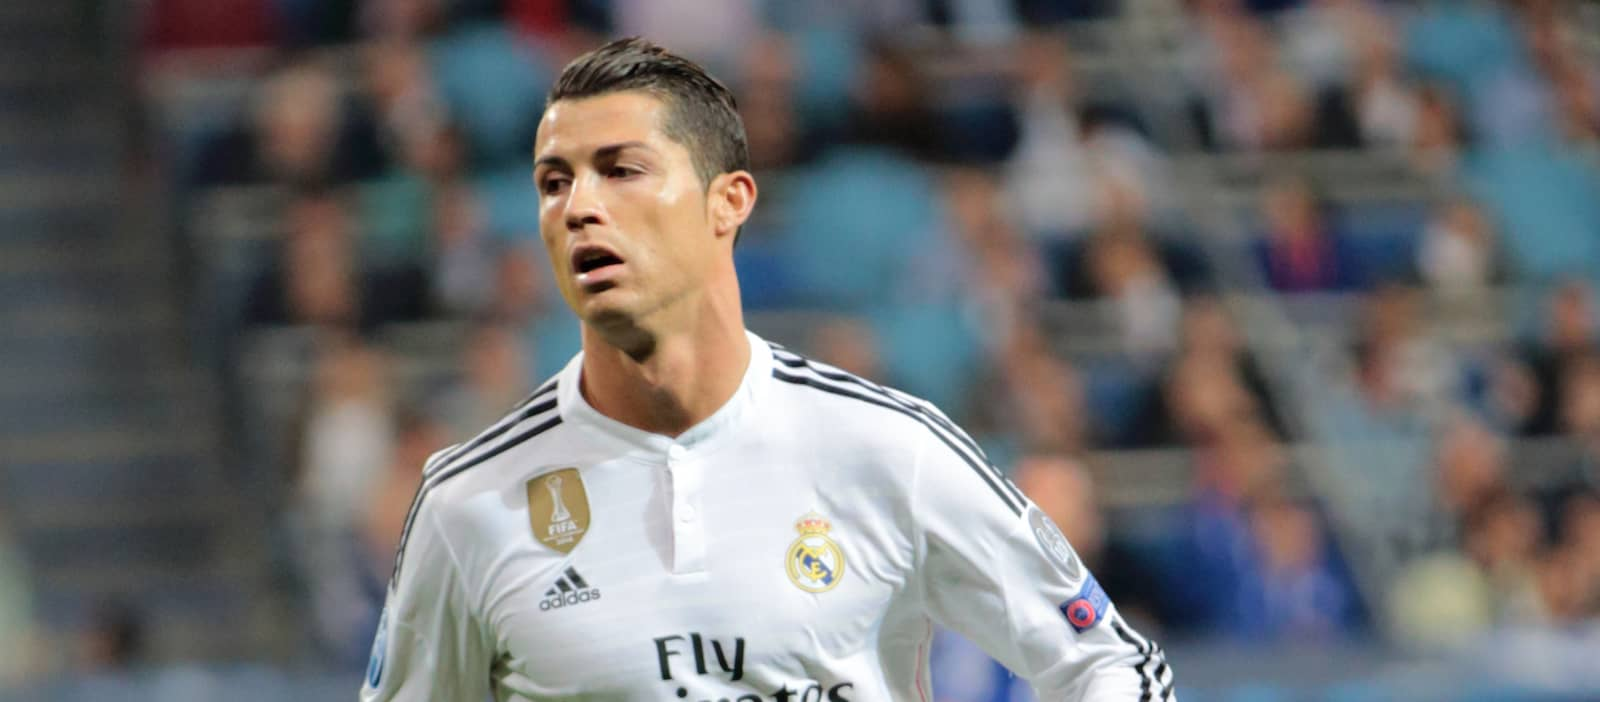 Guillem Balague: Real Madrid will want €60m for Cristiano Ronaldo